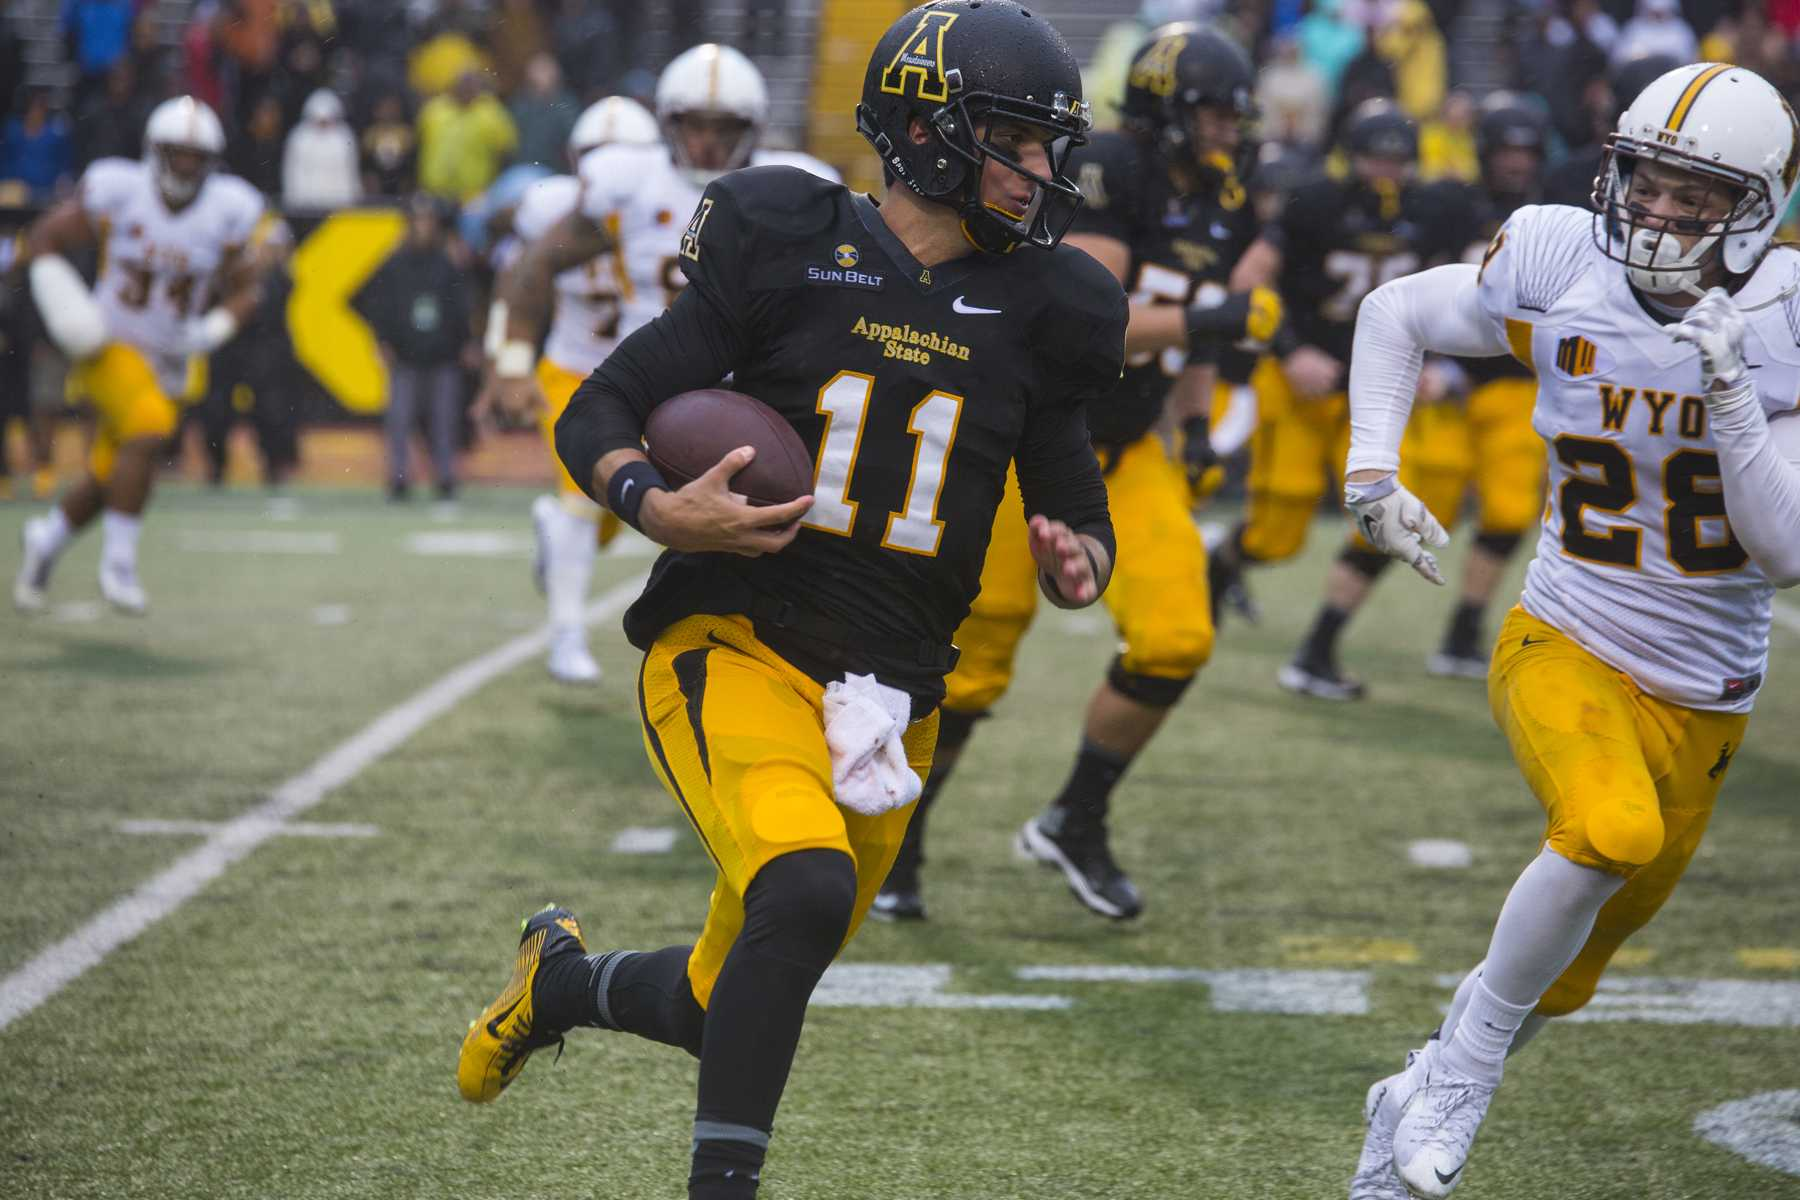 Taylor Lamb in a game against Wyoming last season. Photo by: Chris Deverell